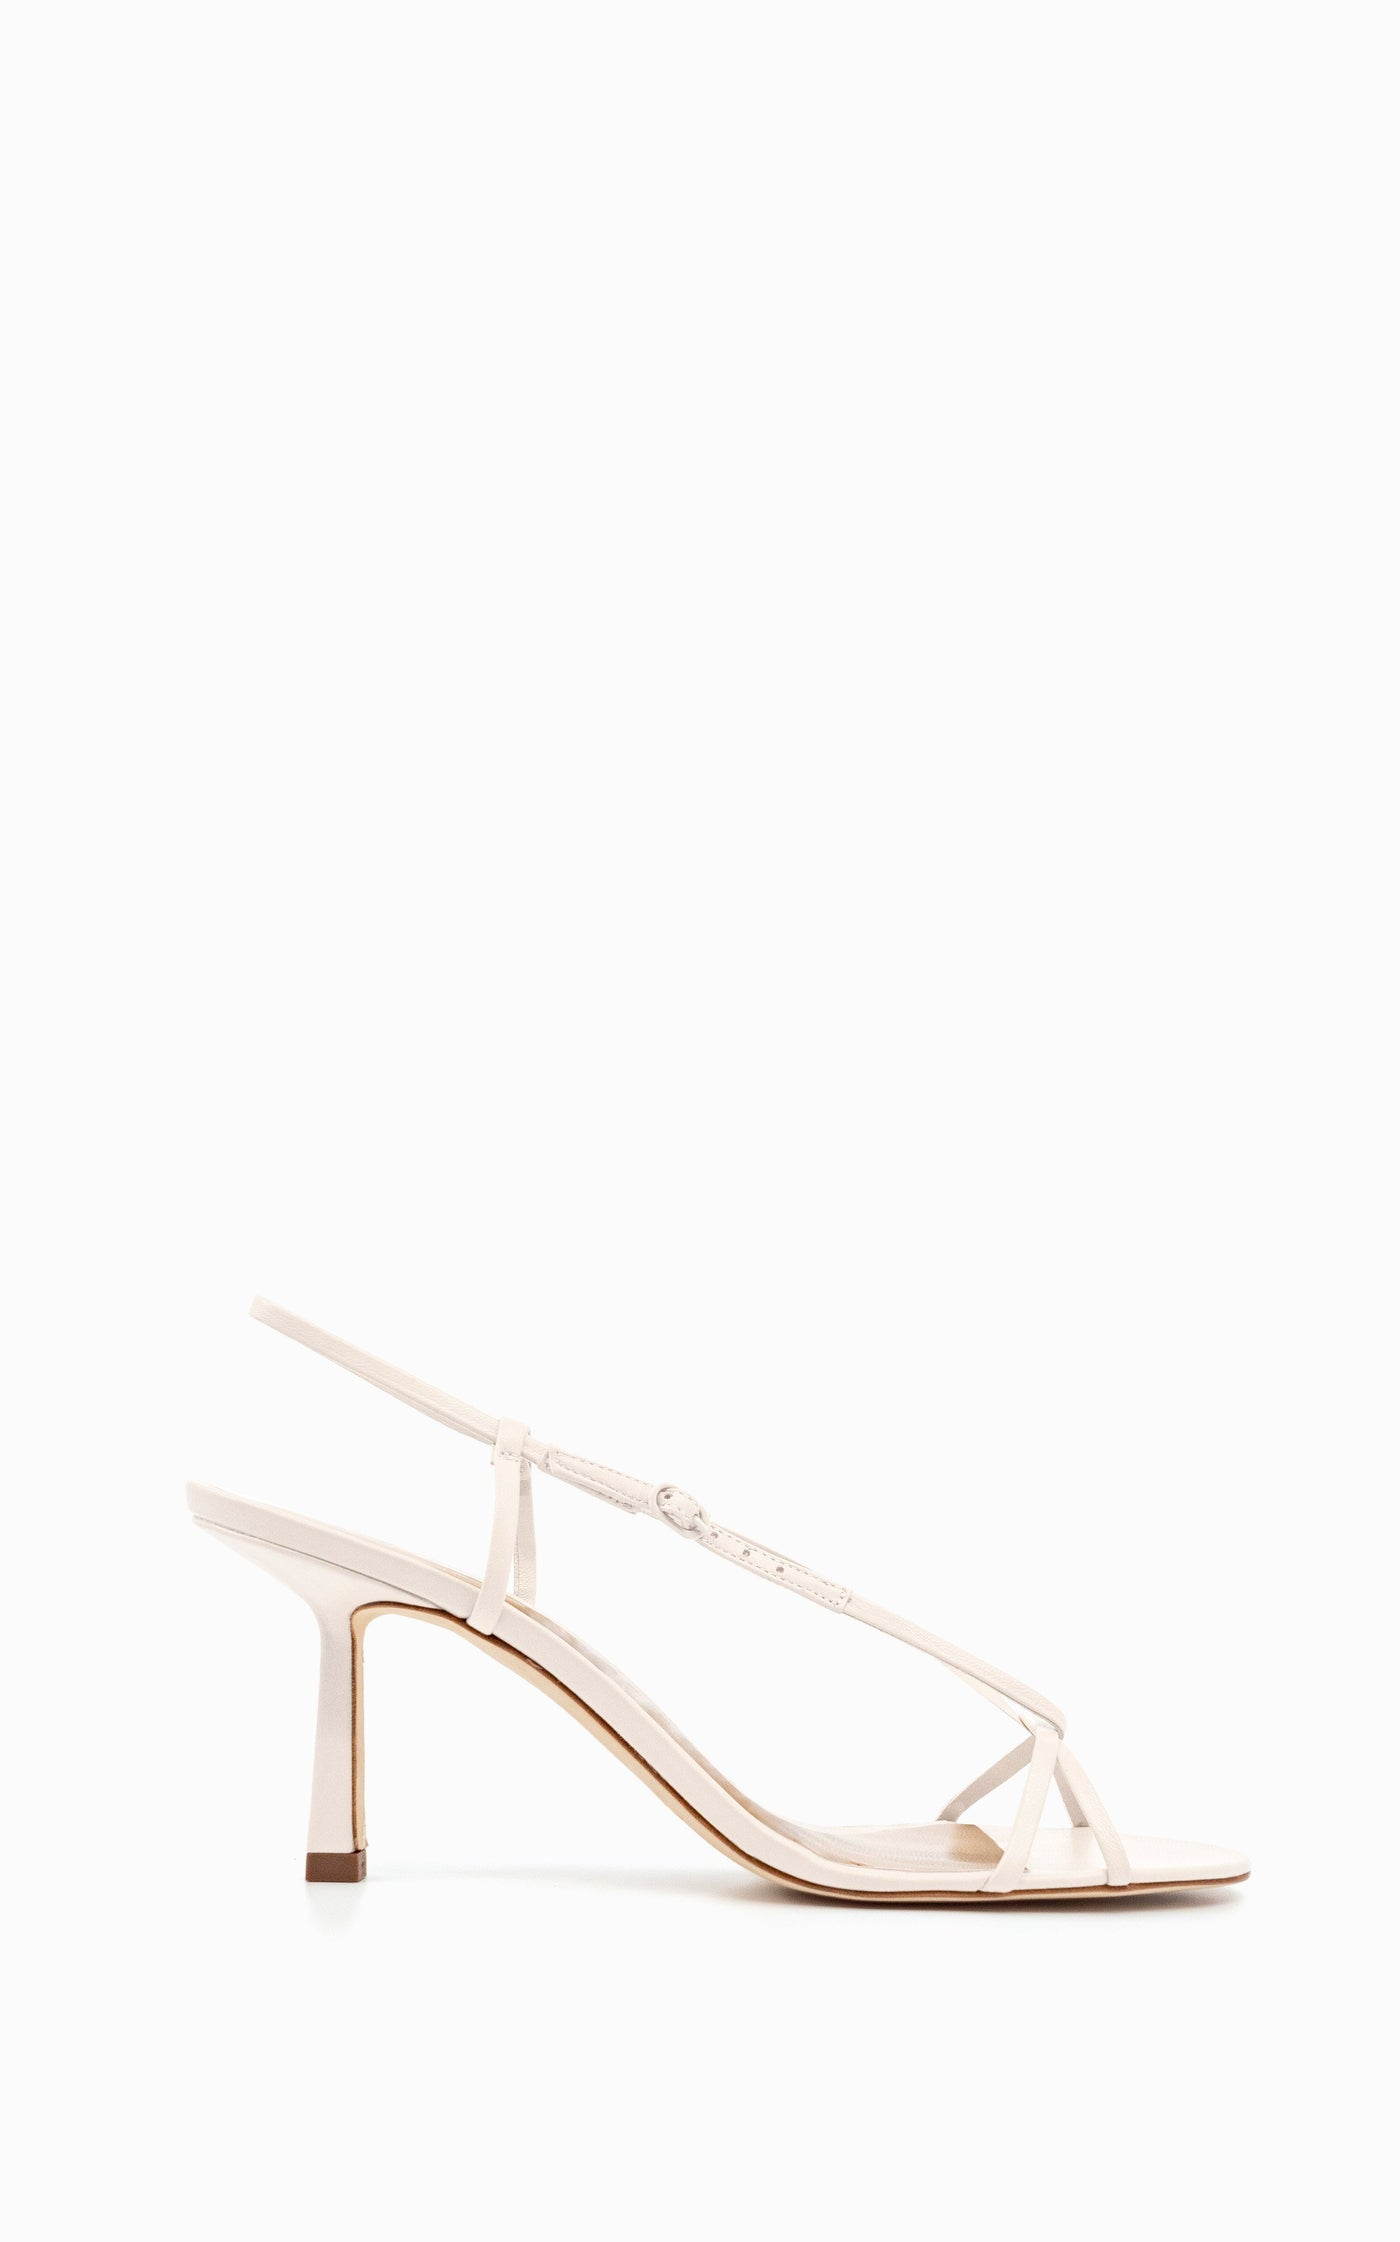 Preorder Entwined 70 Heel | Stone